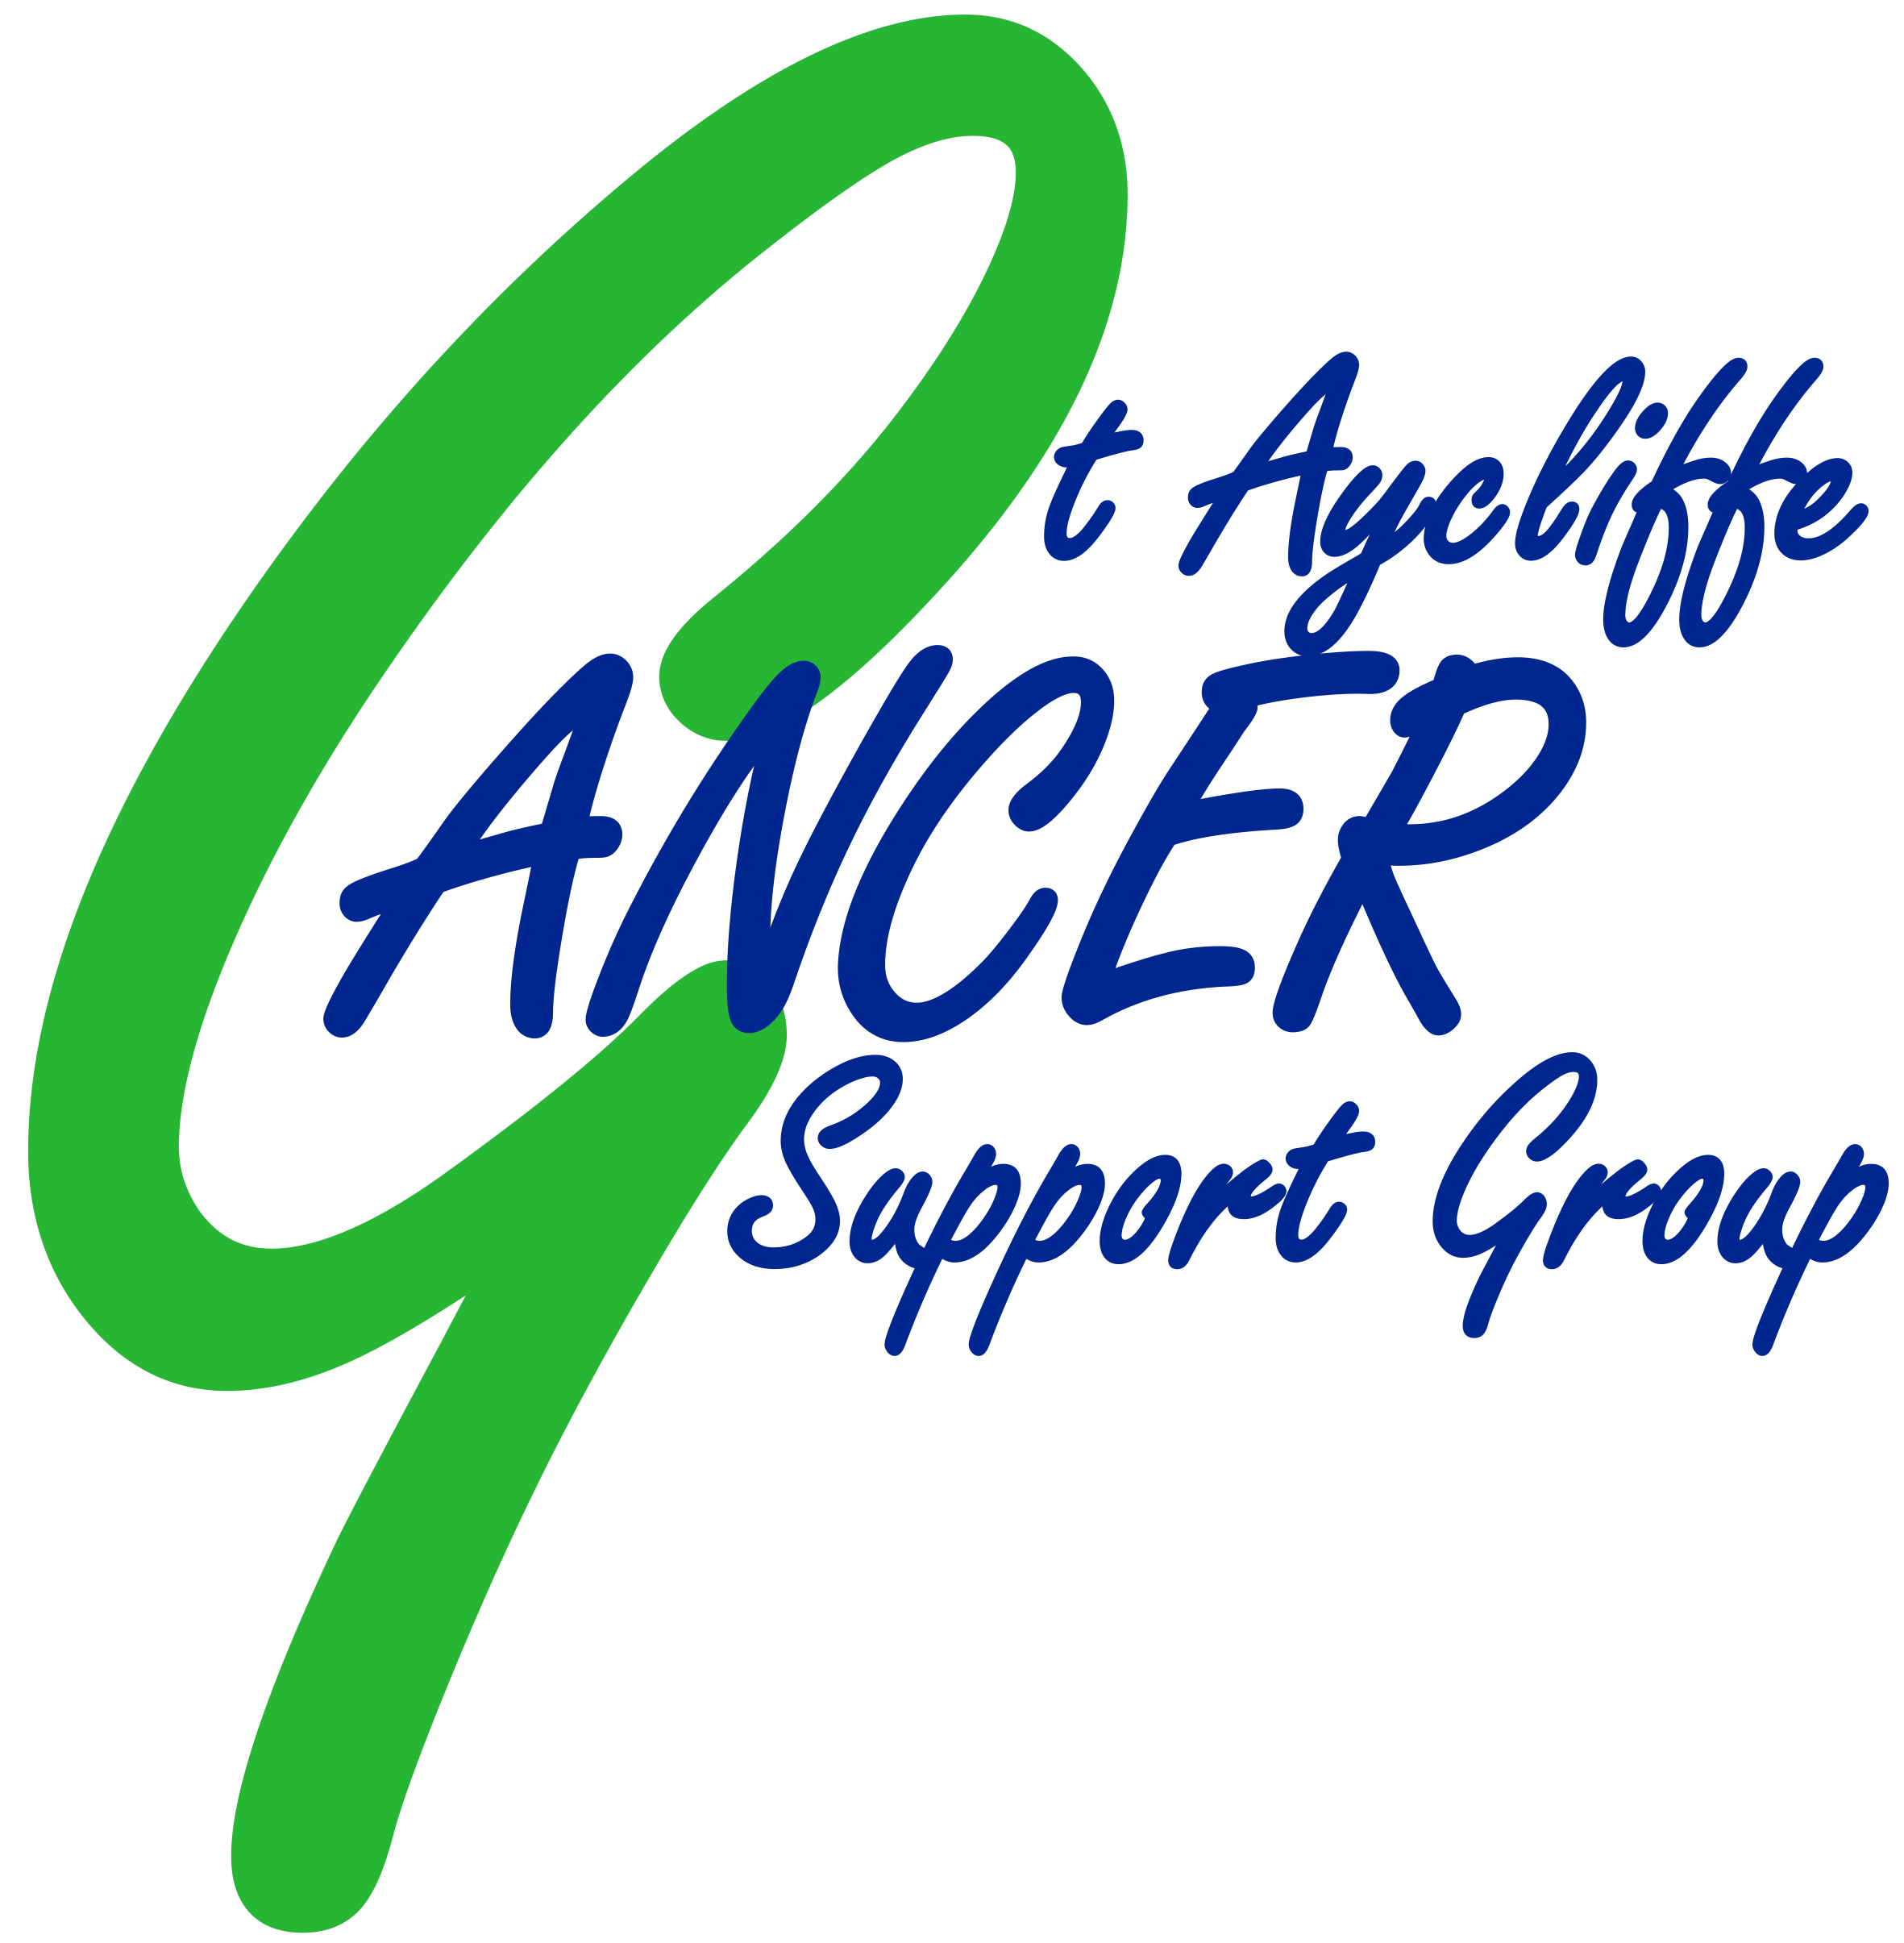 Cancer Support Group in Community Shop